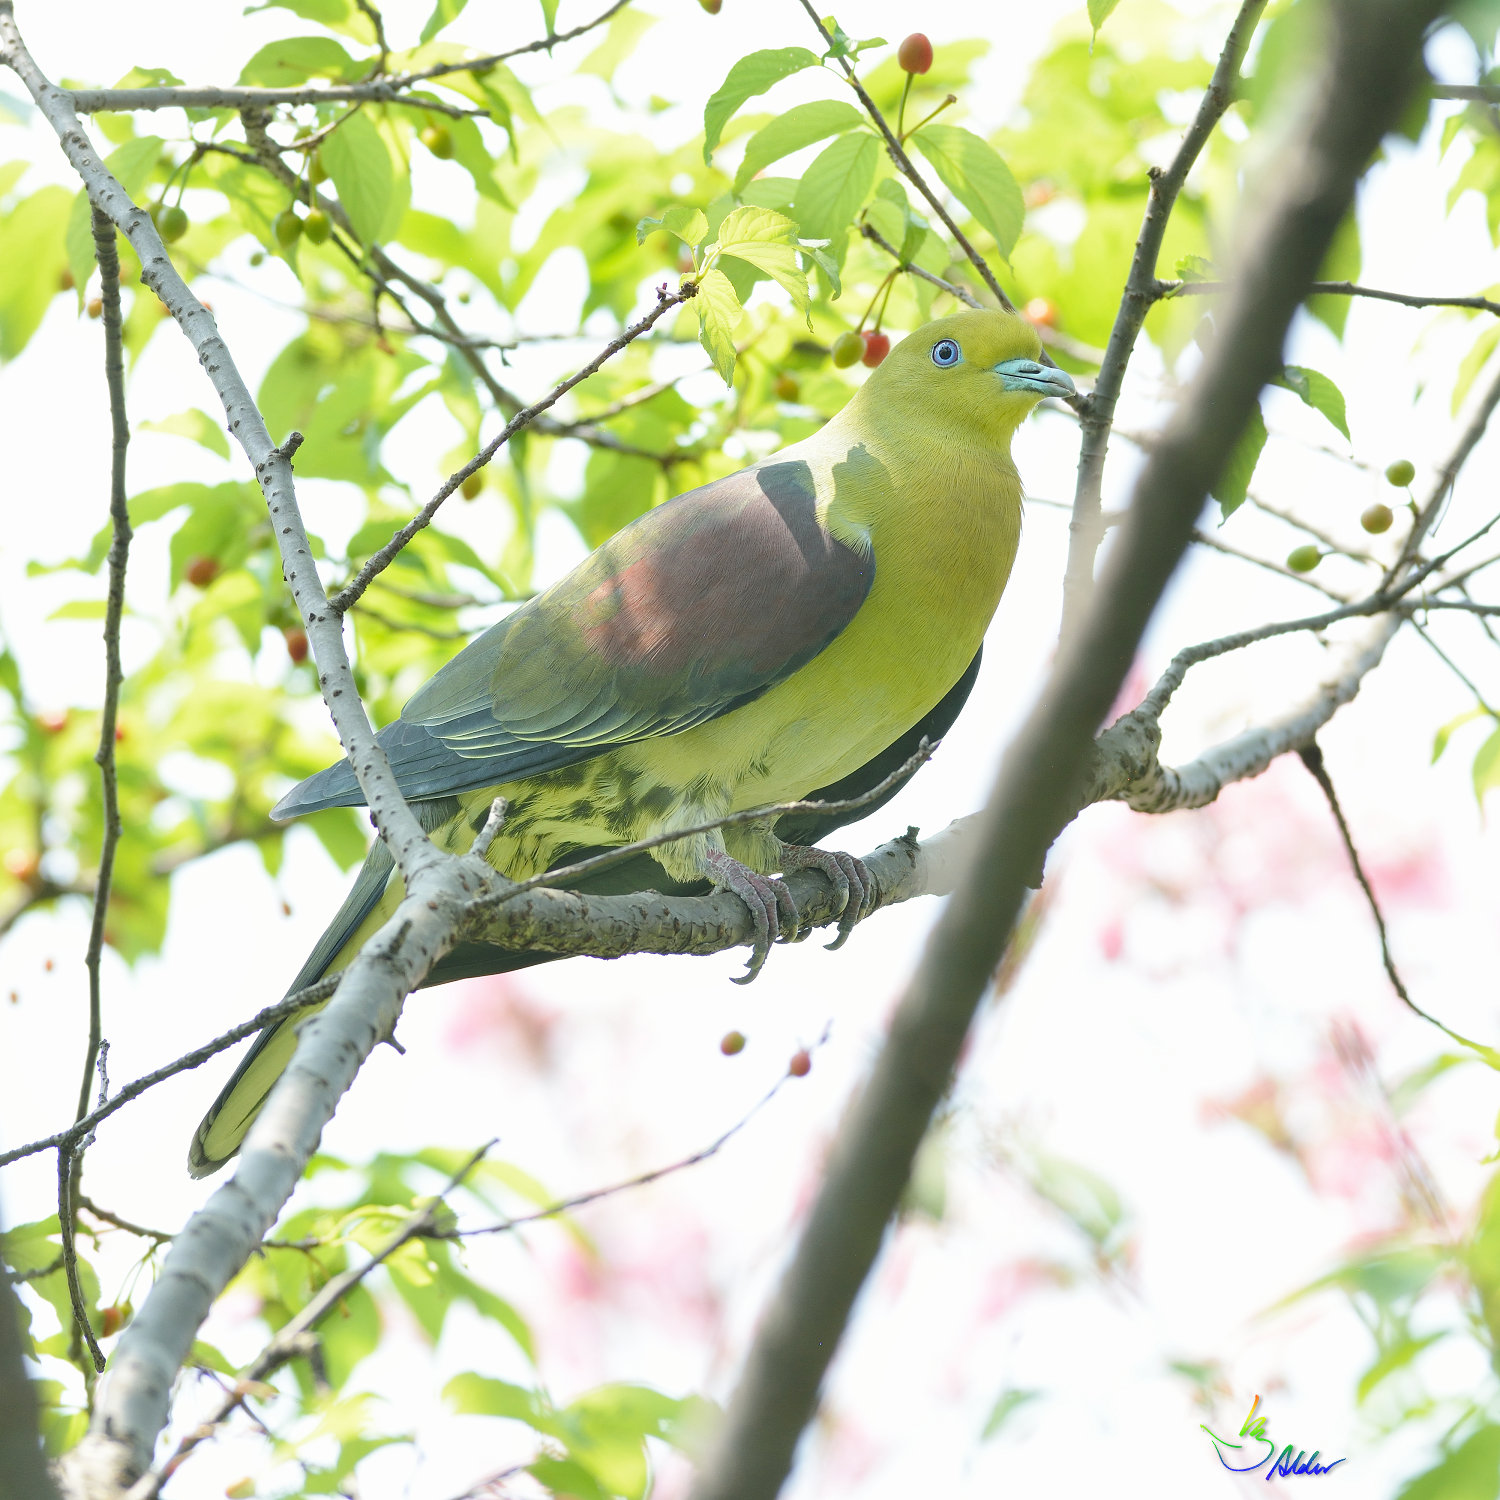 White-bellied_Green_Pigeon_5648